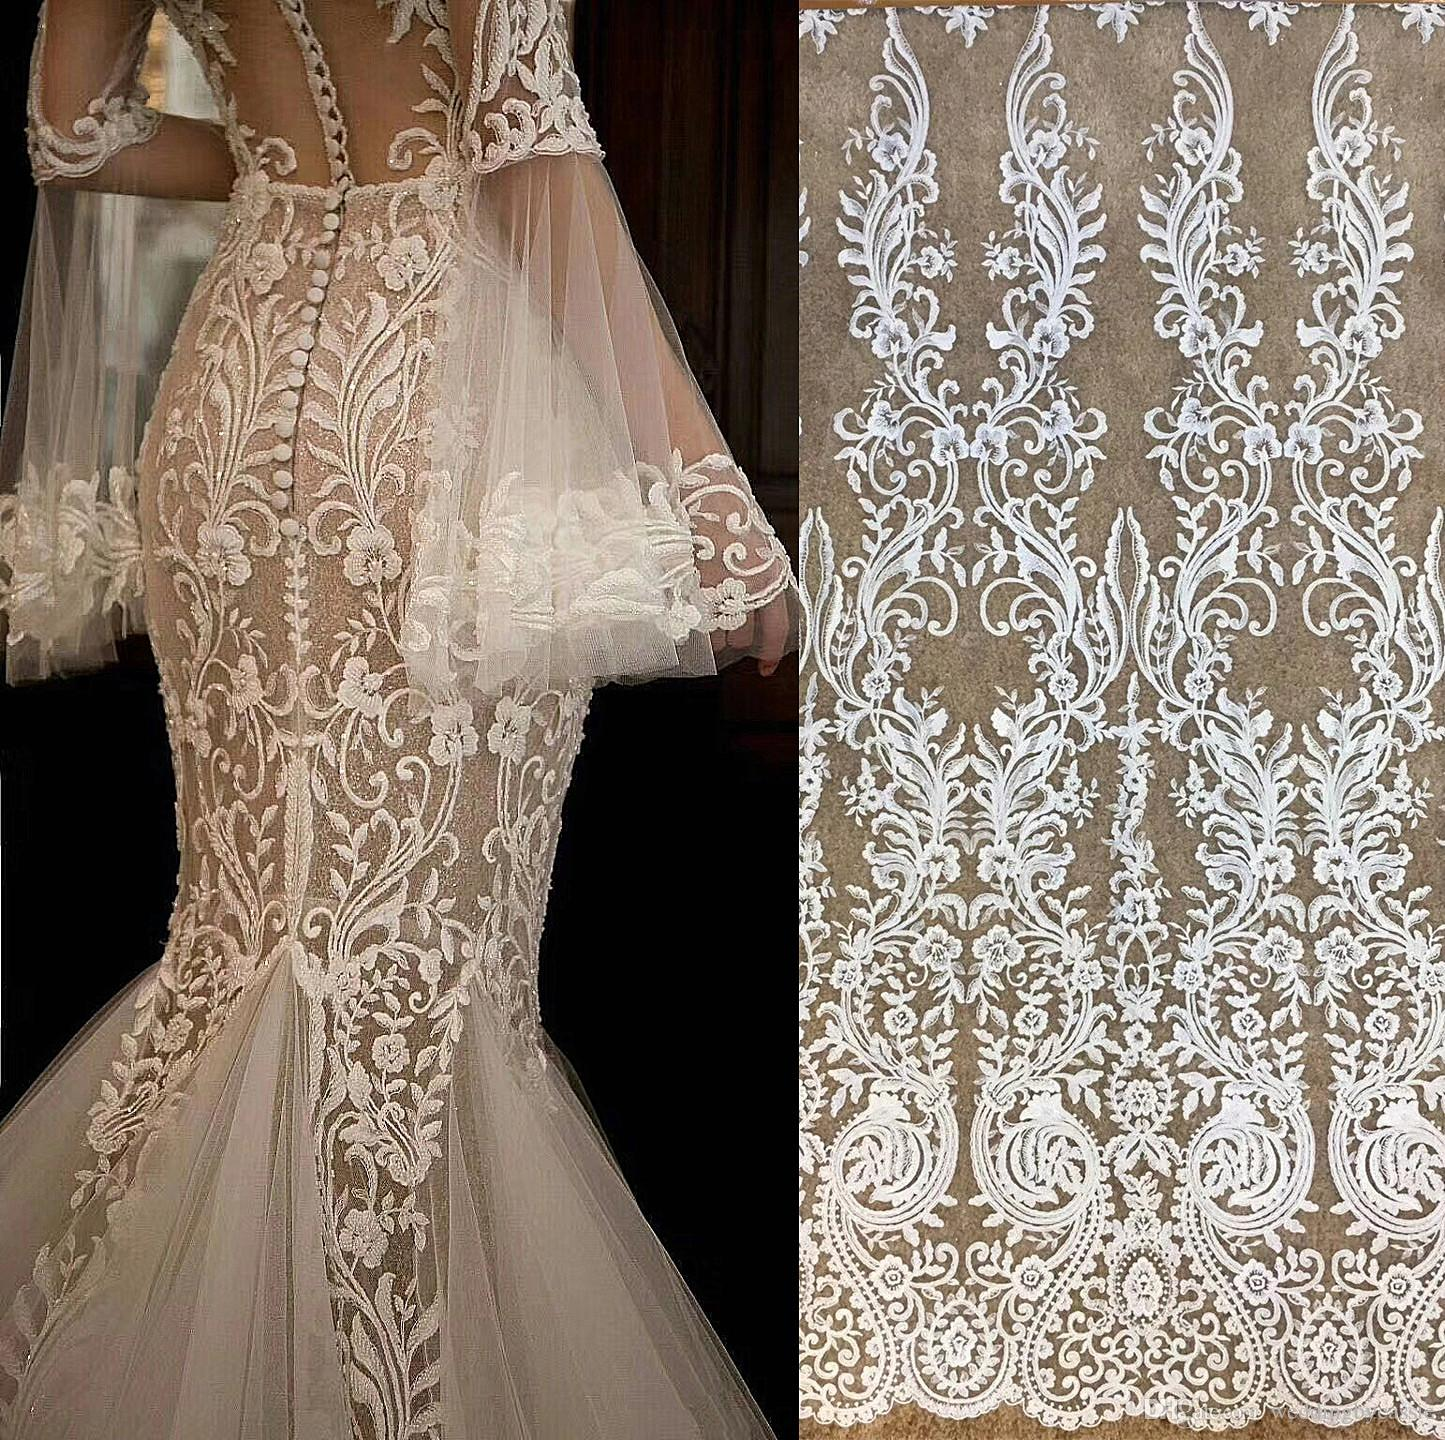 White French Vintage Fabric Embroidery Lace Wedding Dress